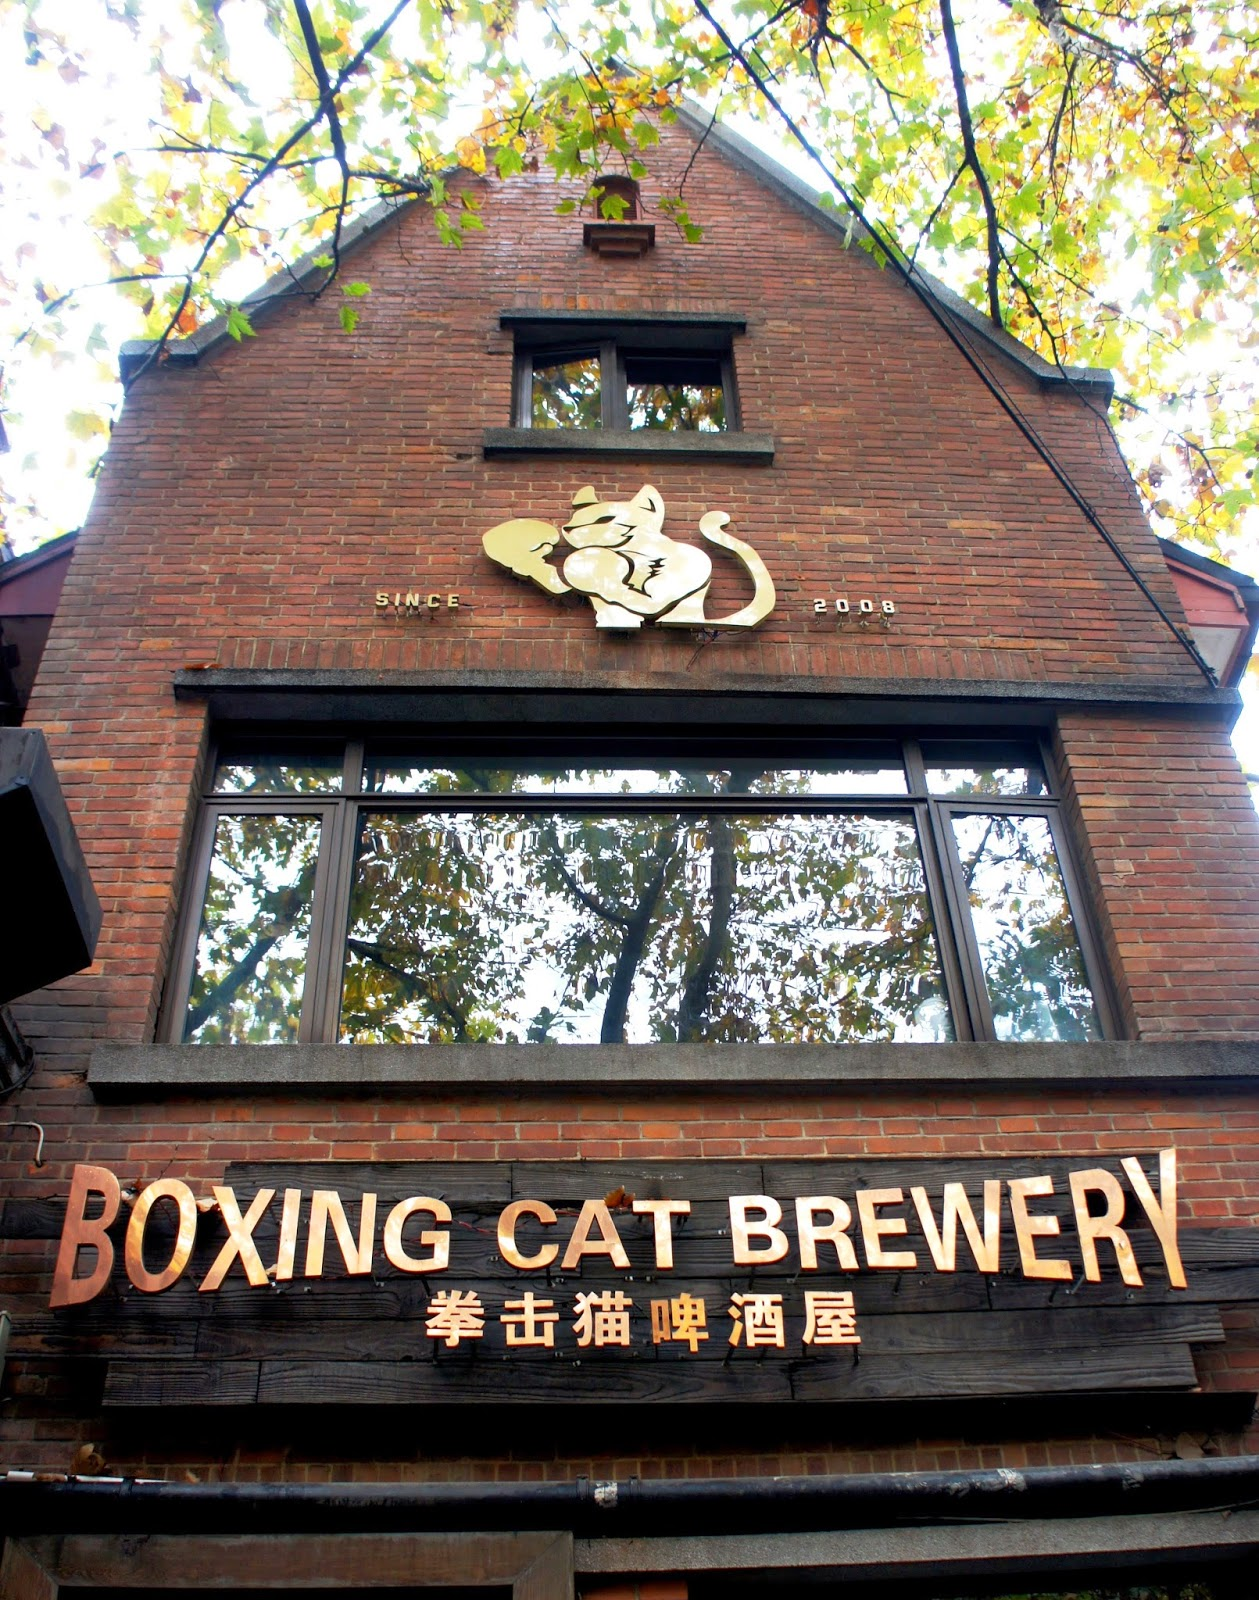 Boxing Cat Brewery Shanghai China